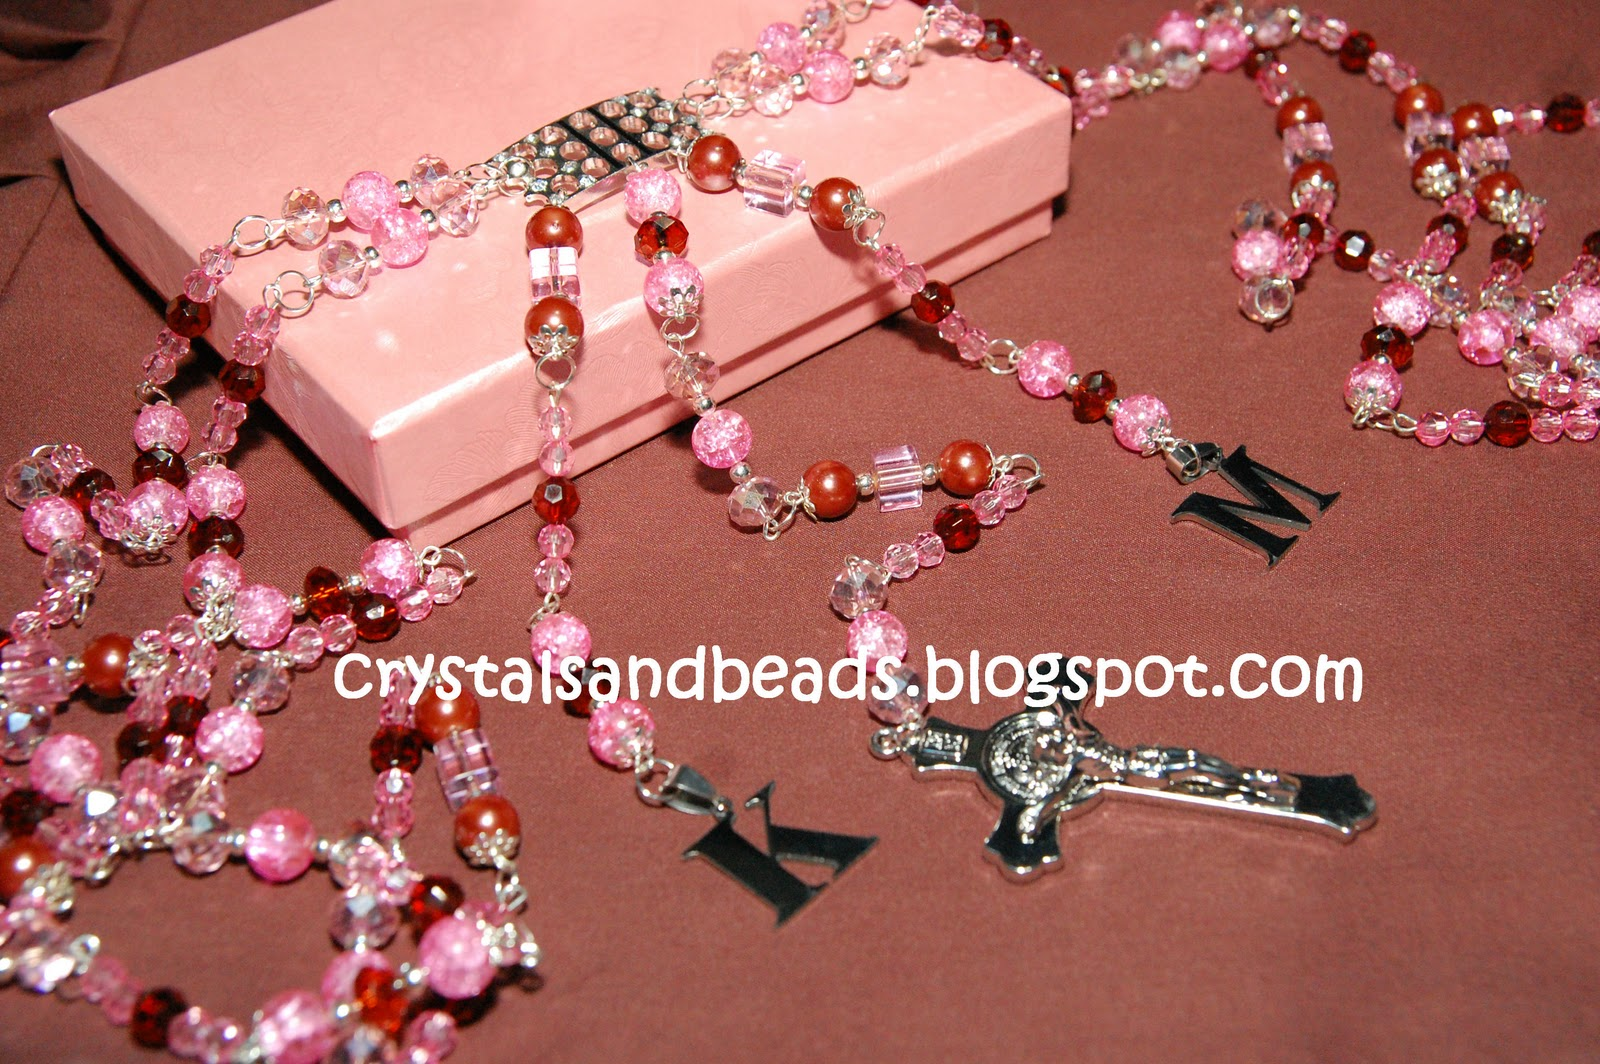 Crystals and Beads: the Wedding Cord = crystals & beads